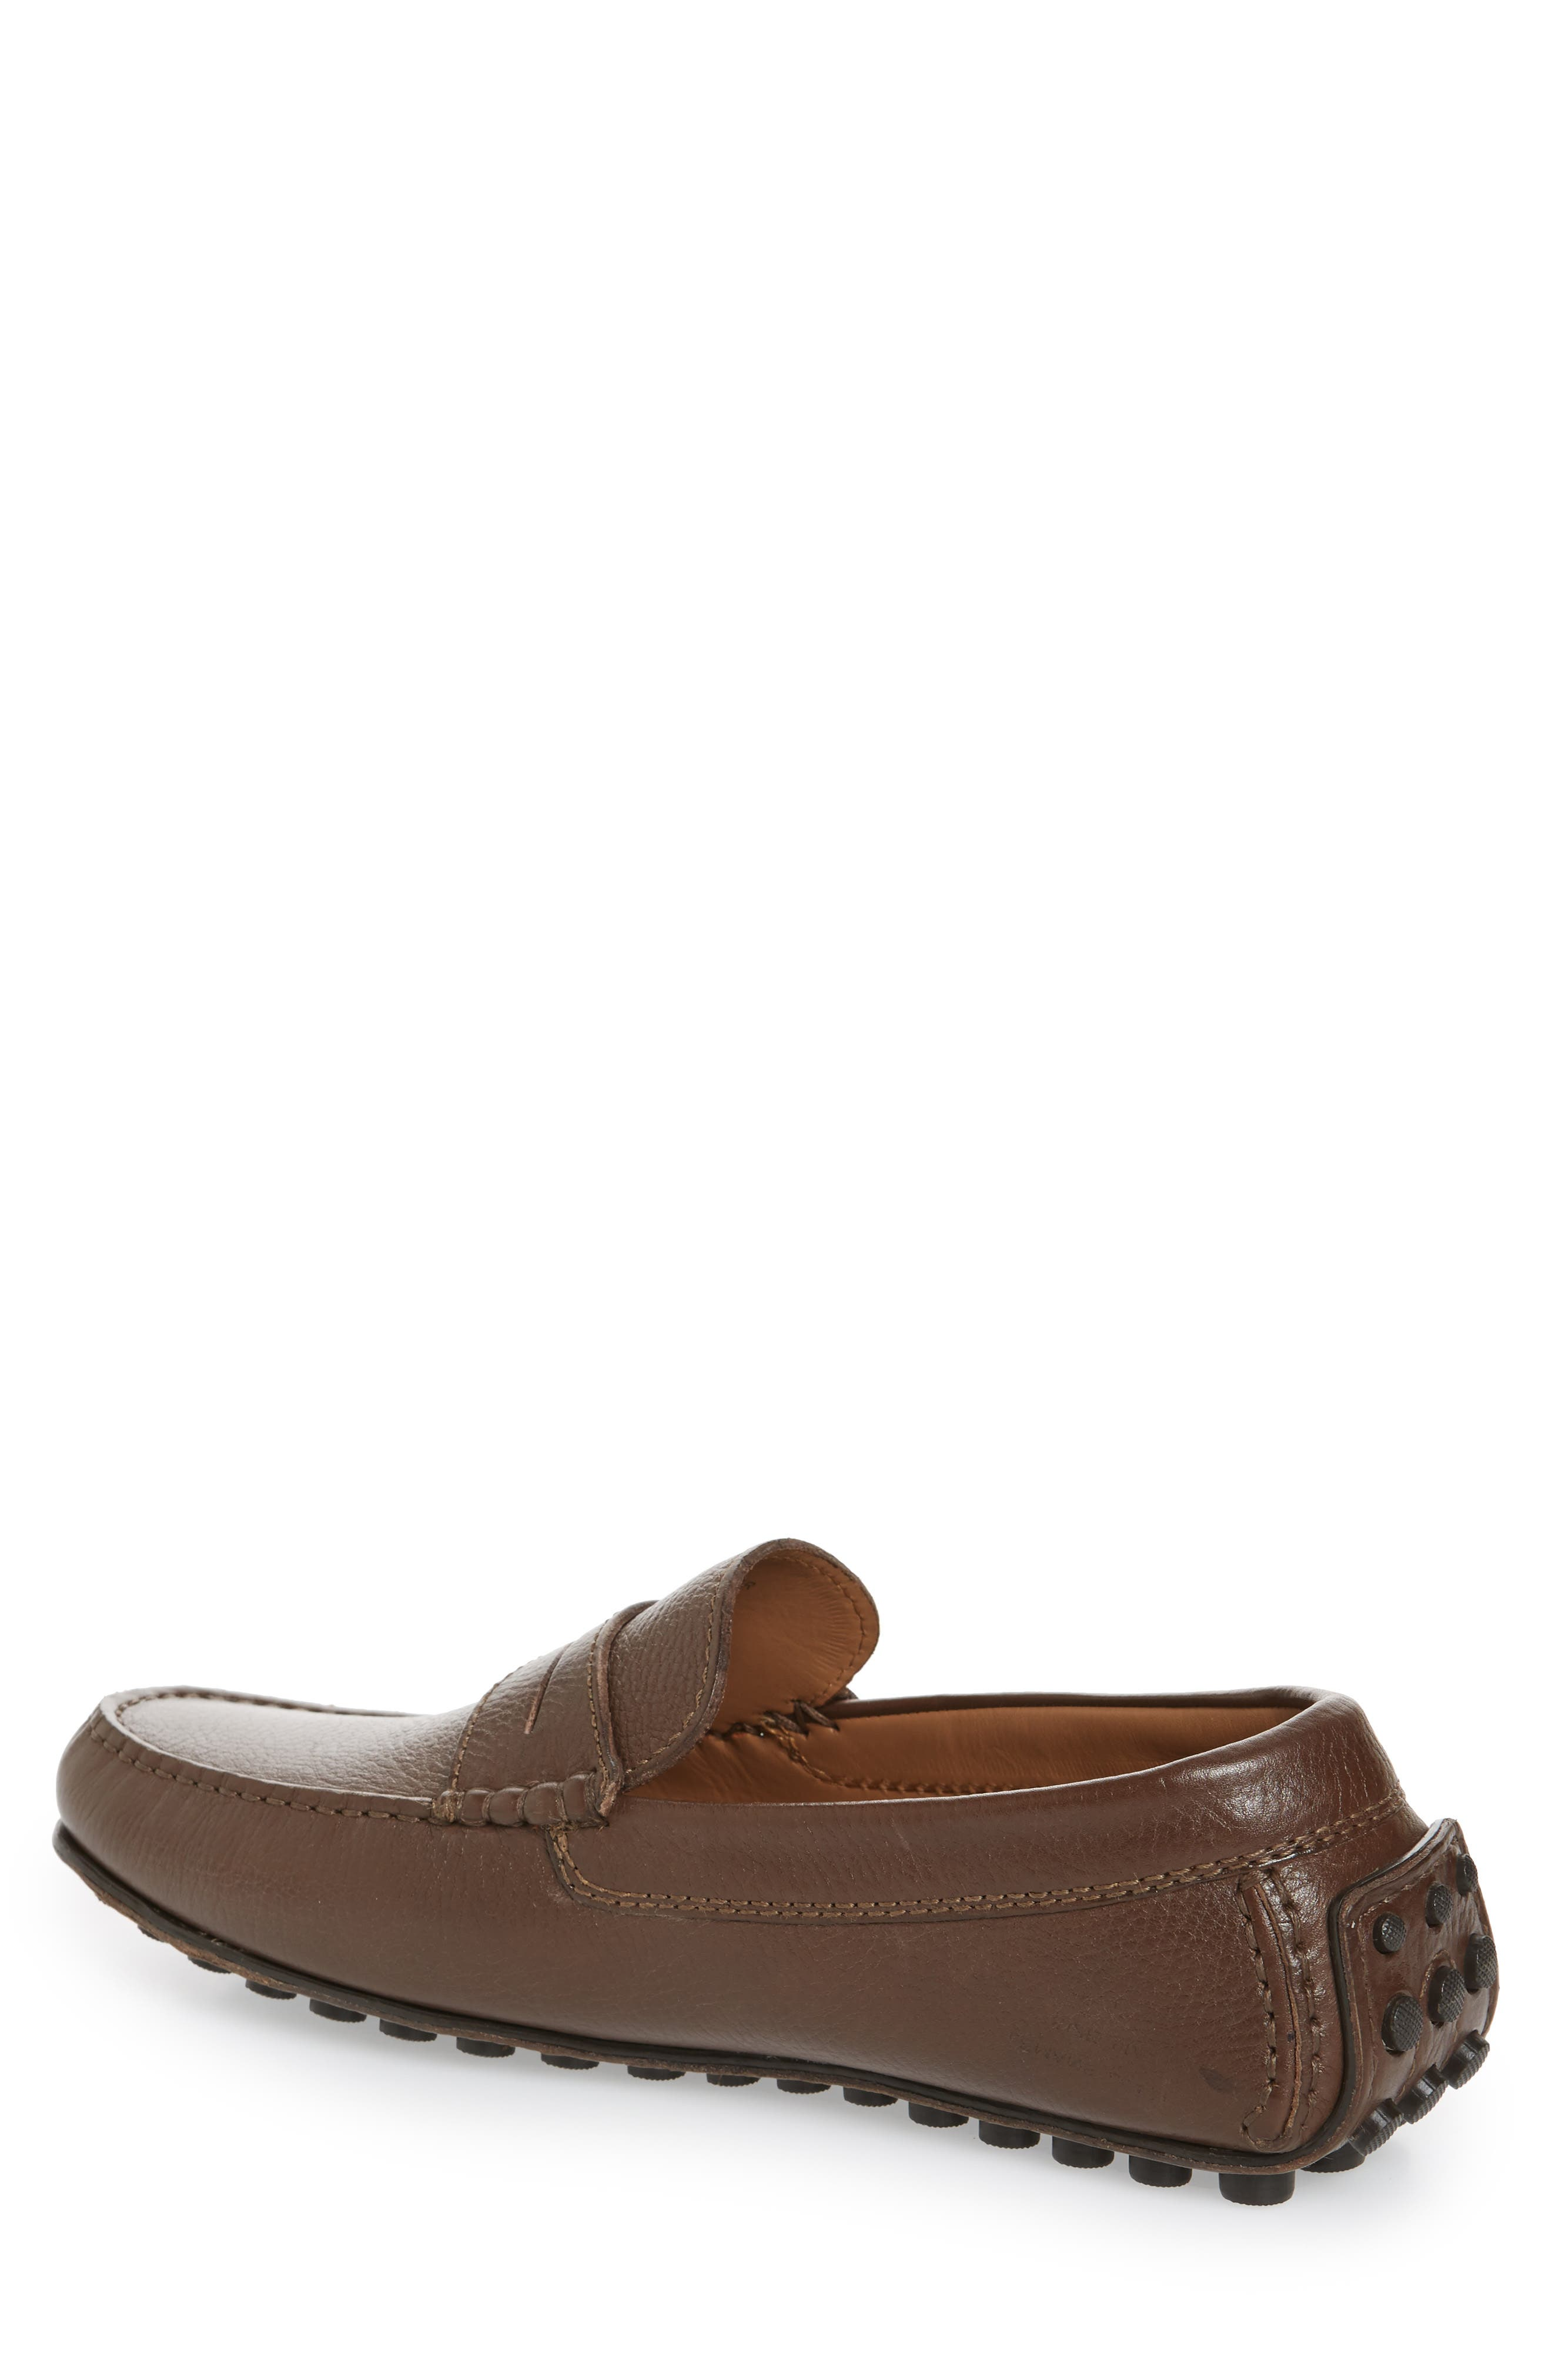 Le Mans Penny Driving Moccasin,                             Alternate thumbnail 2, color,                             BROWN